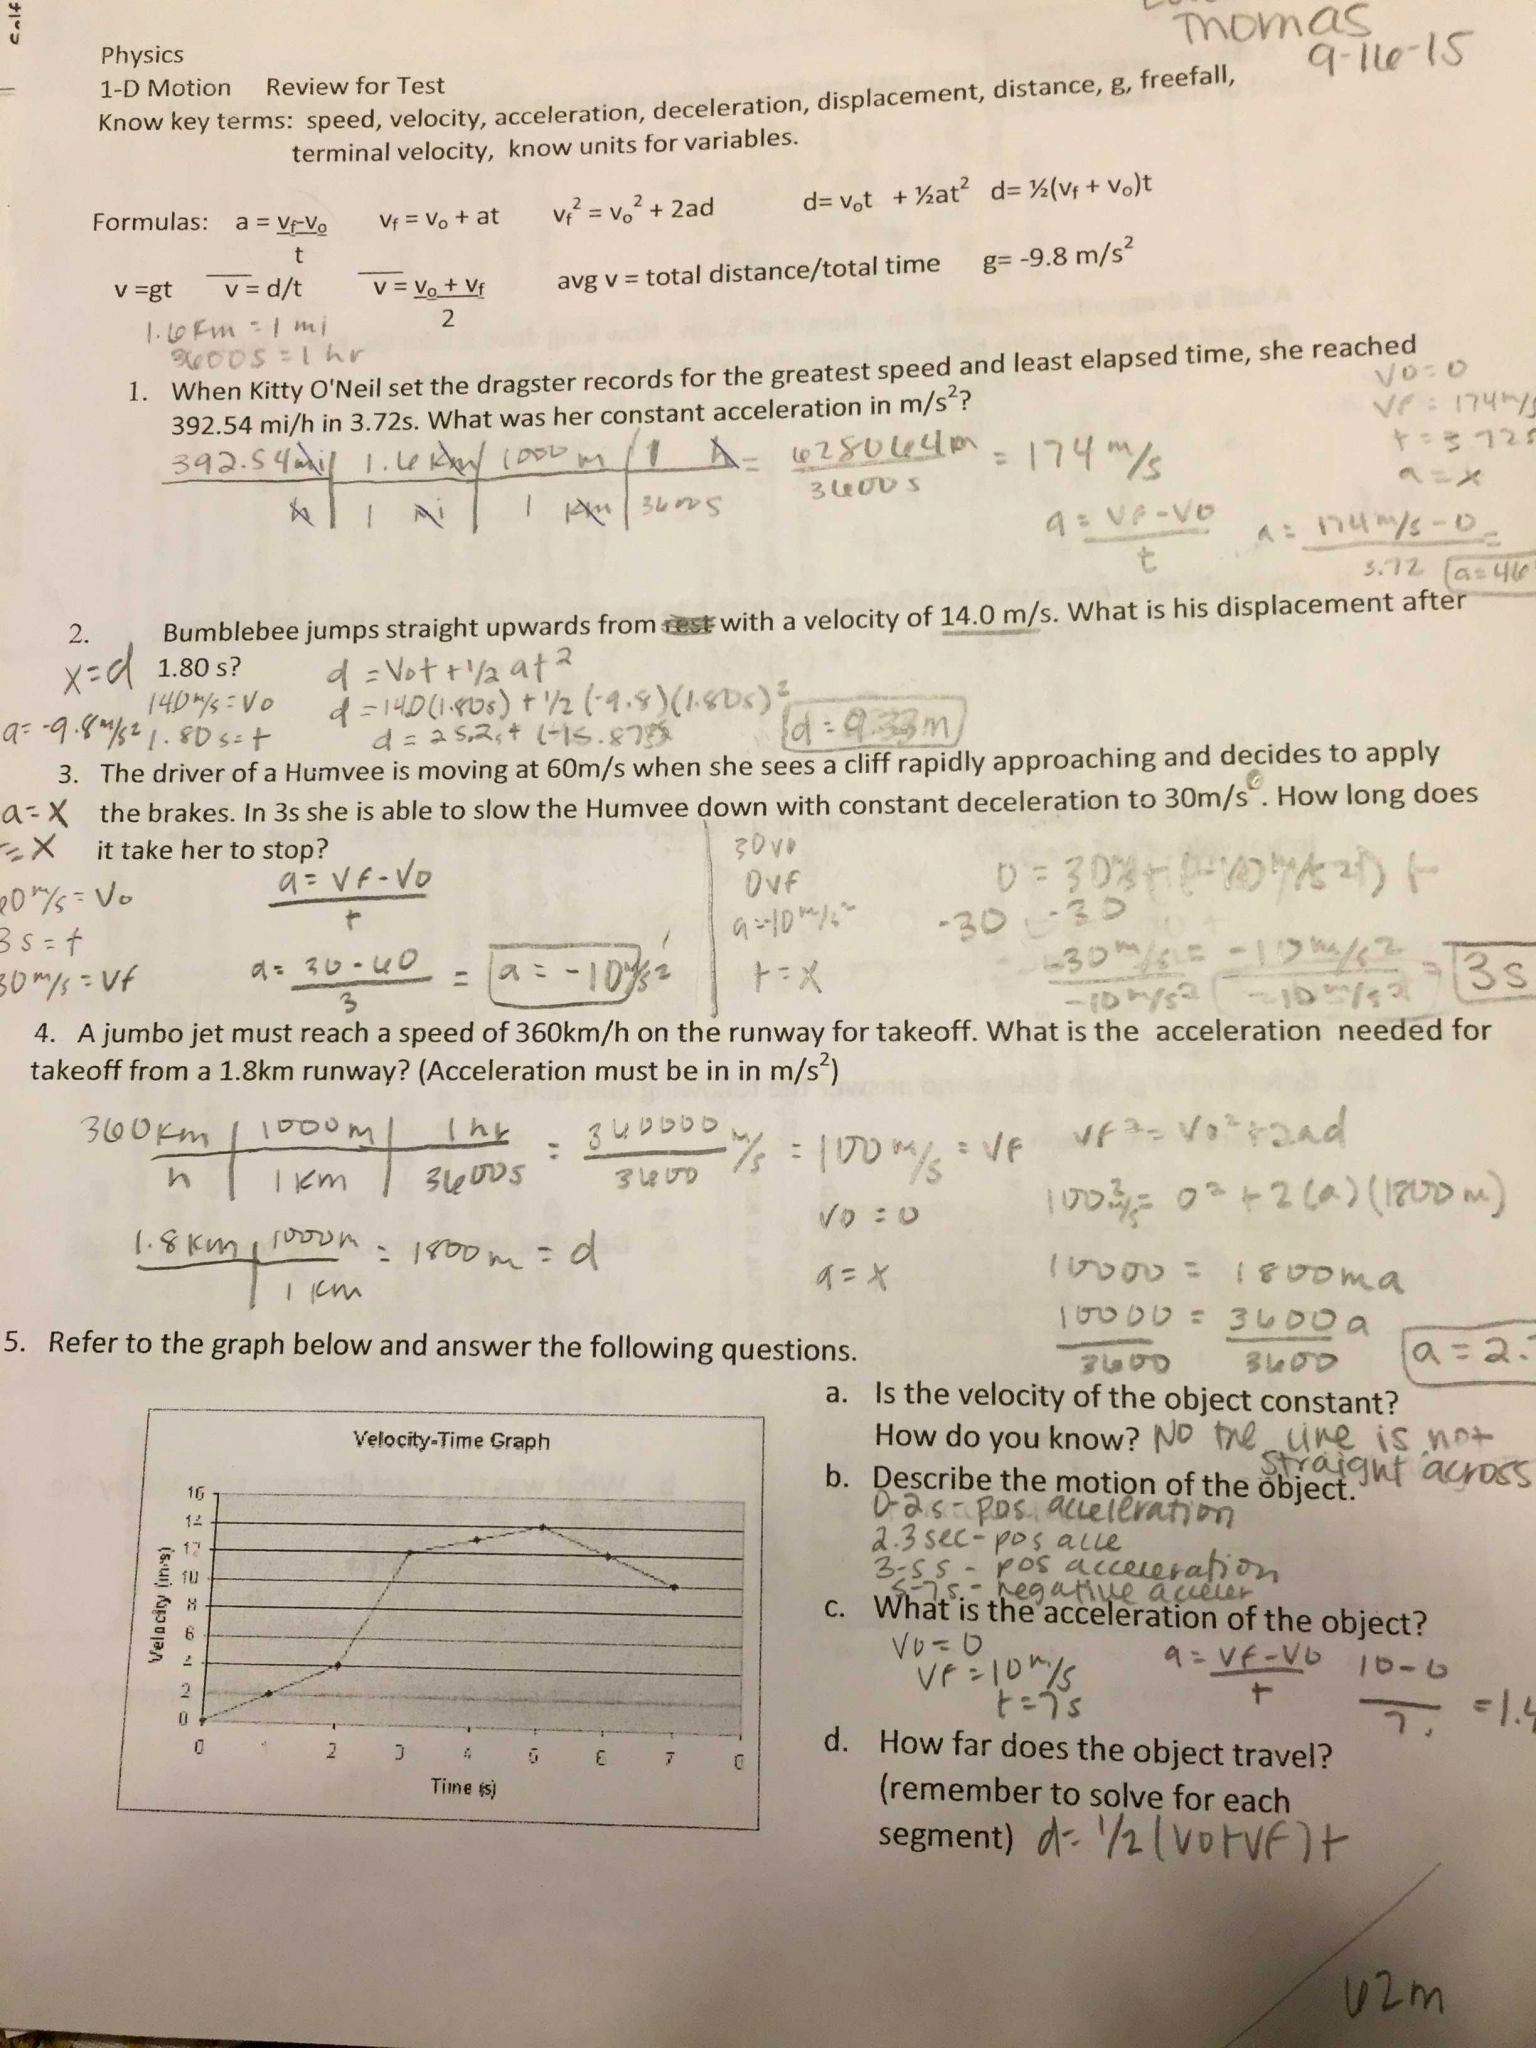 Velocity and Acceleration Calculation Worksheet Fresh Displacement Velocity and Acceleration Worksheet Answers